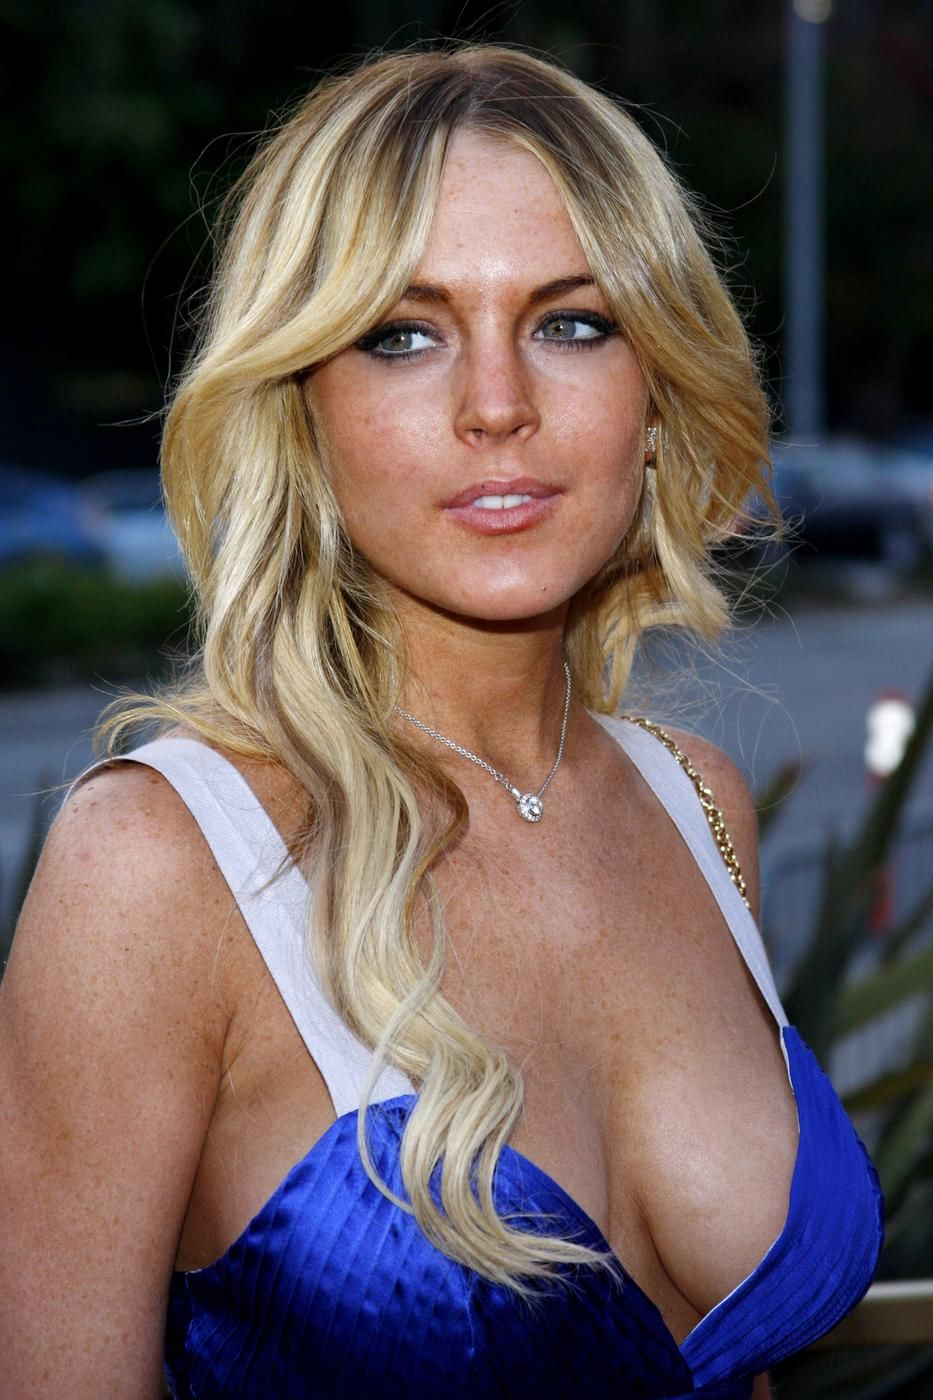 Real Lindsay Lohan Nude Pics and Video Scene - Ximage